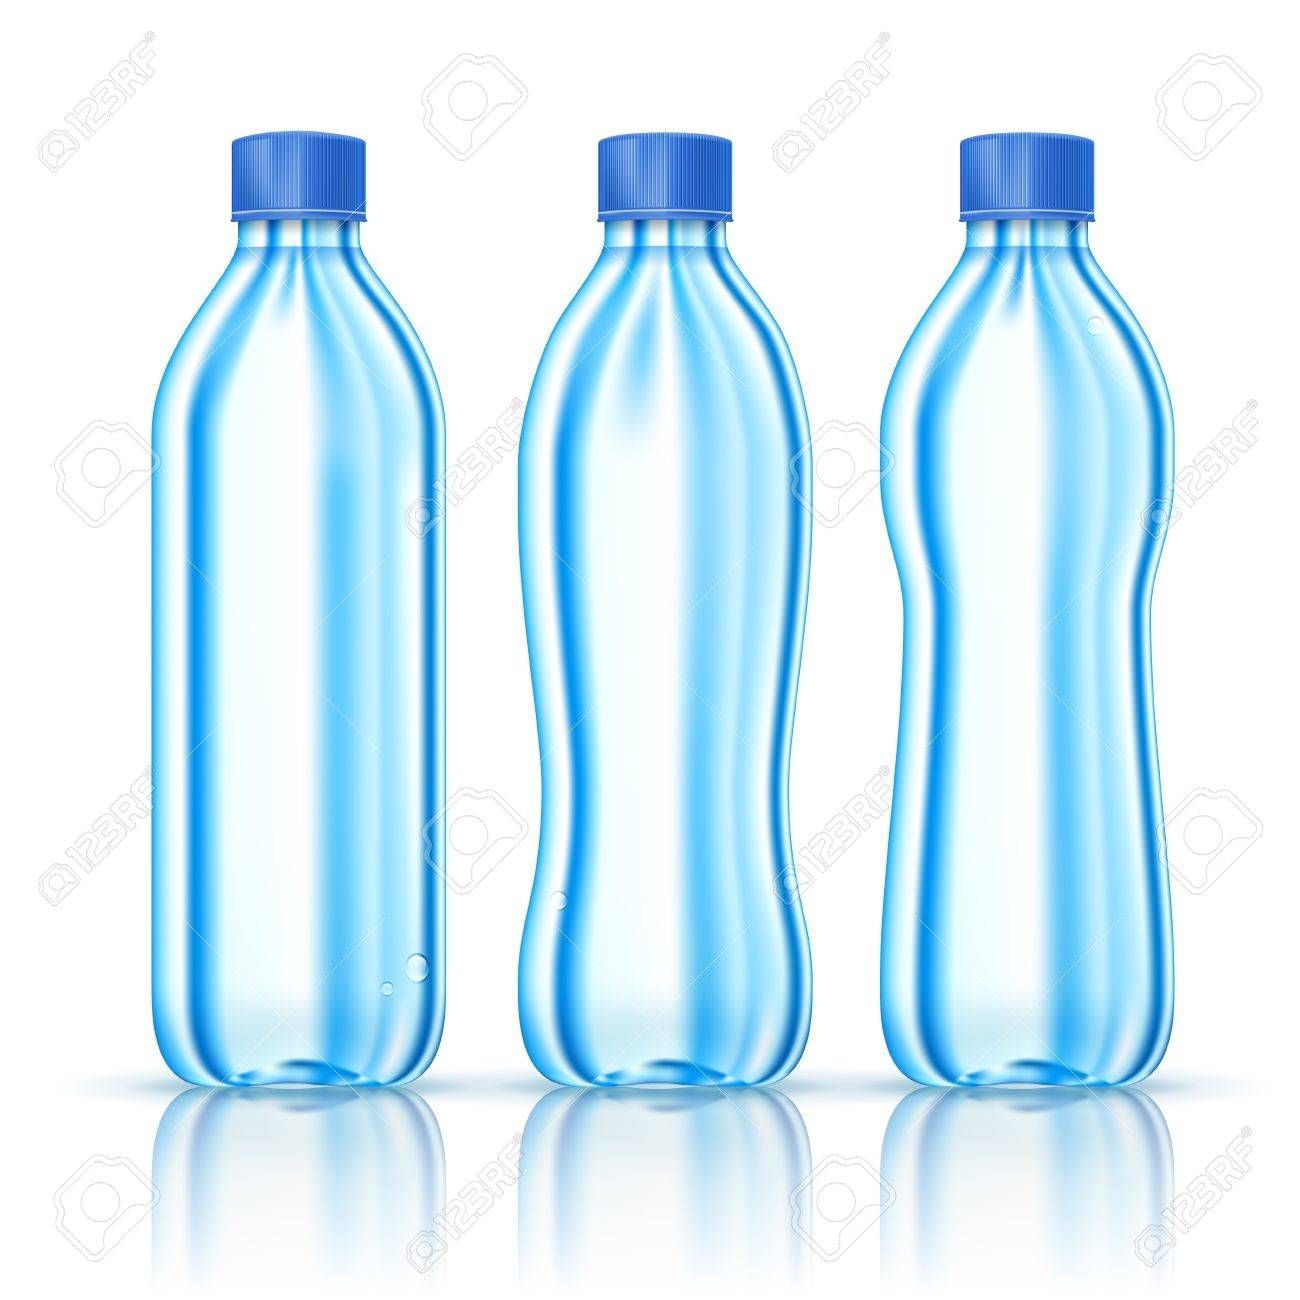 Water bottles various forms isolated on white  Illustration Stock Vector - 15684072